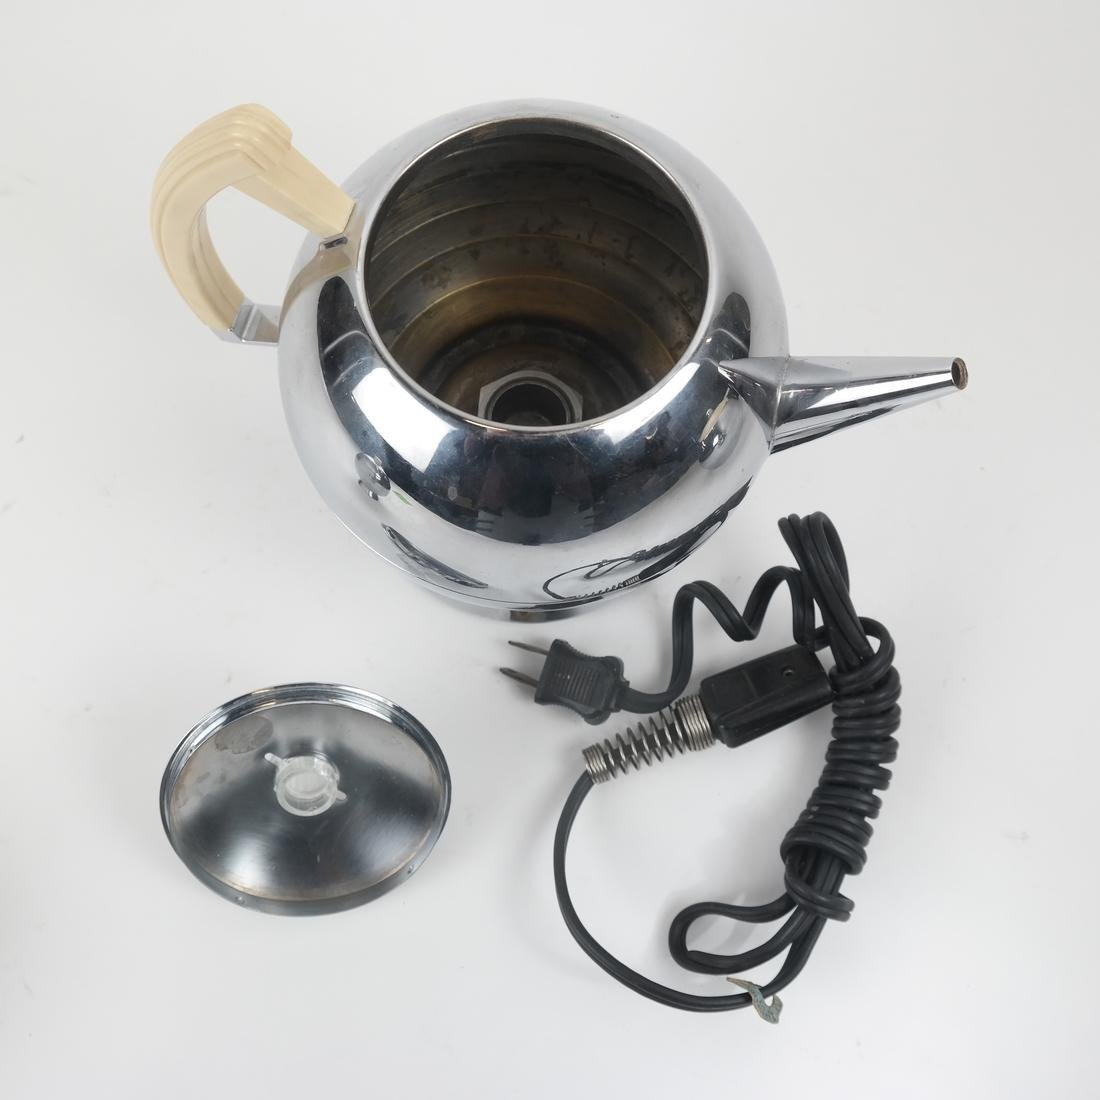 Three Piece Bakelite and Chrome Tea Set by Chase - 4